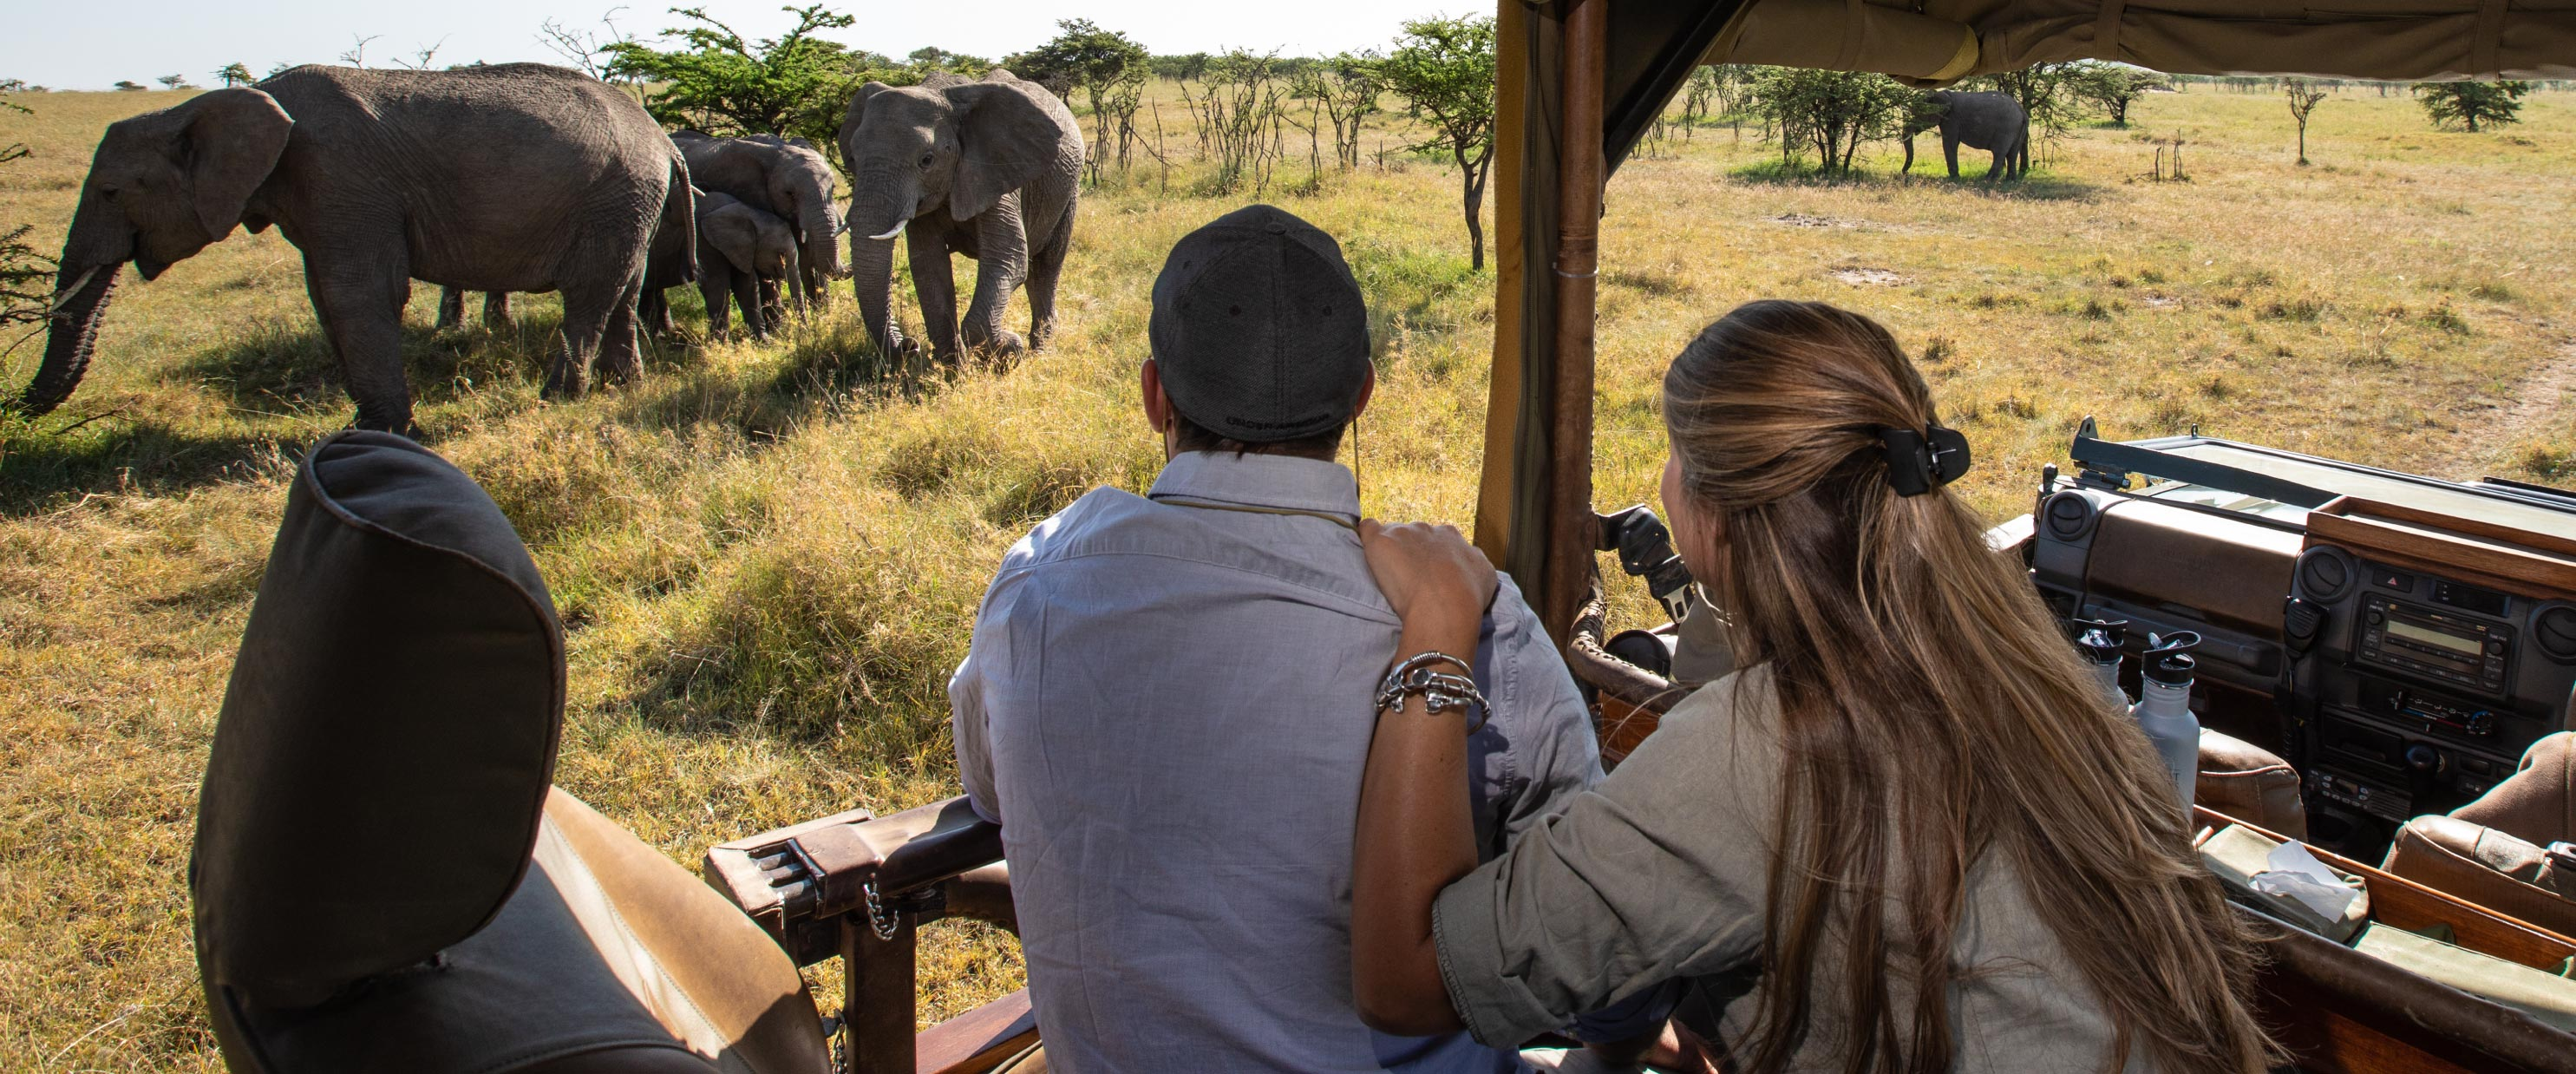 ADORE Africa Safari Guide